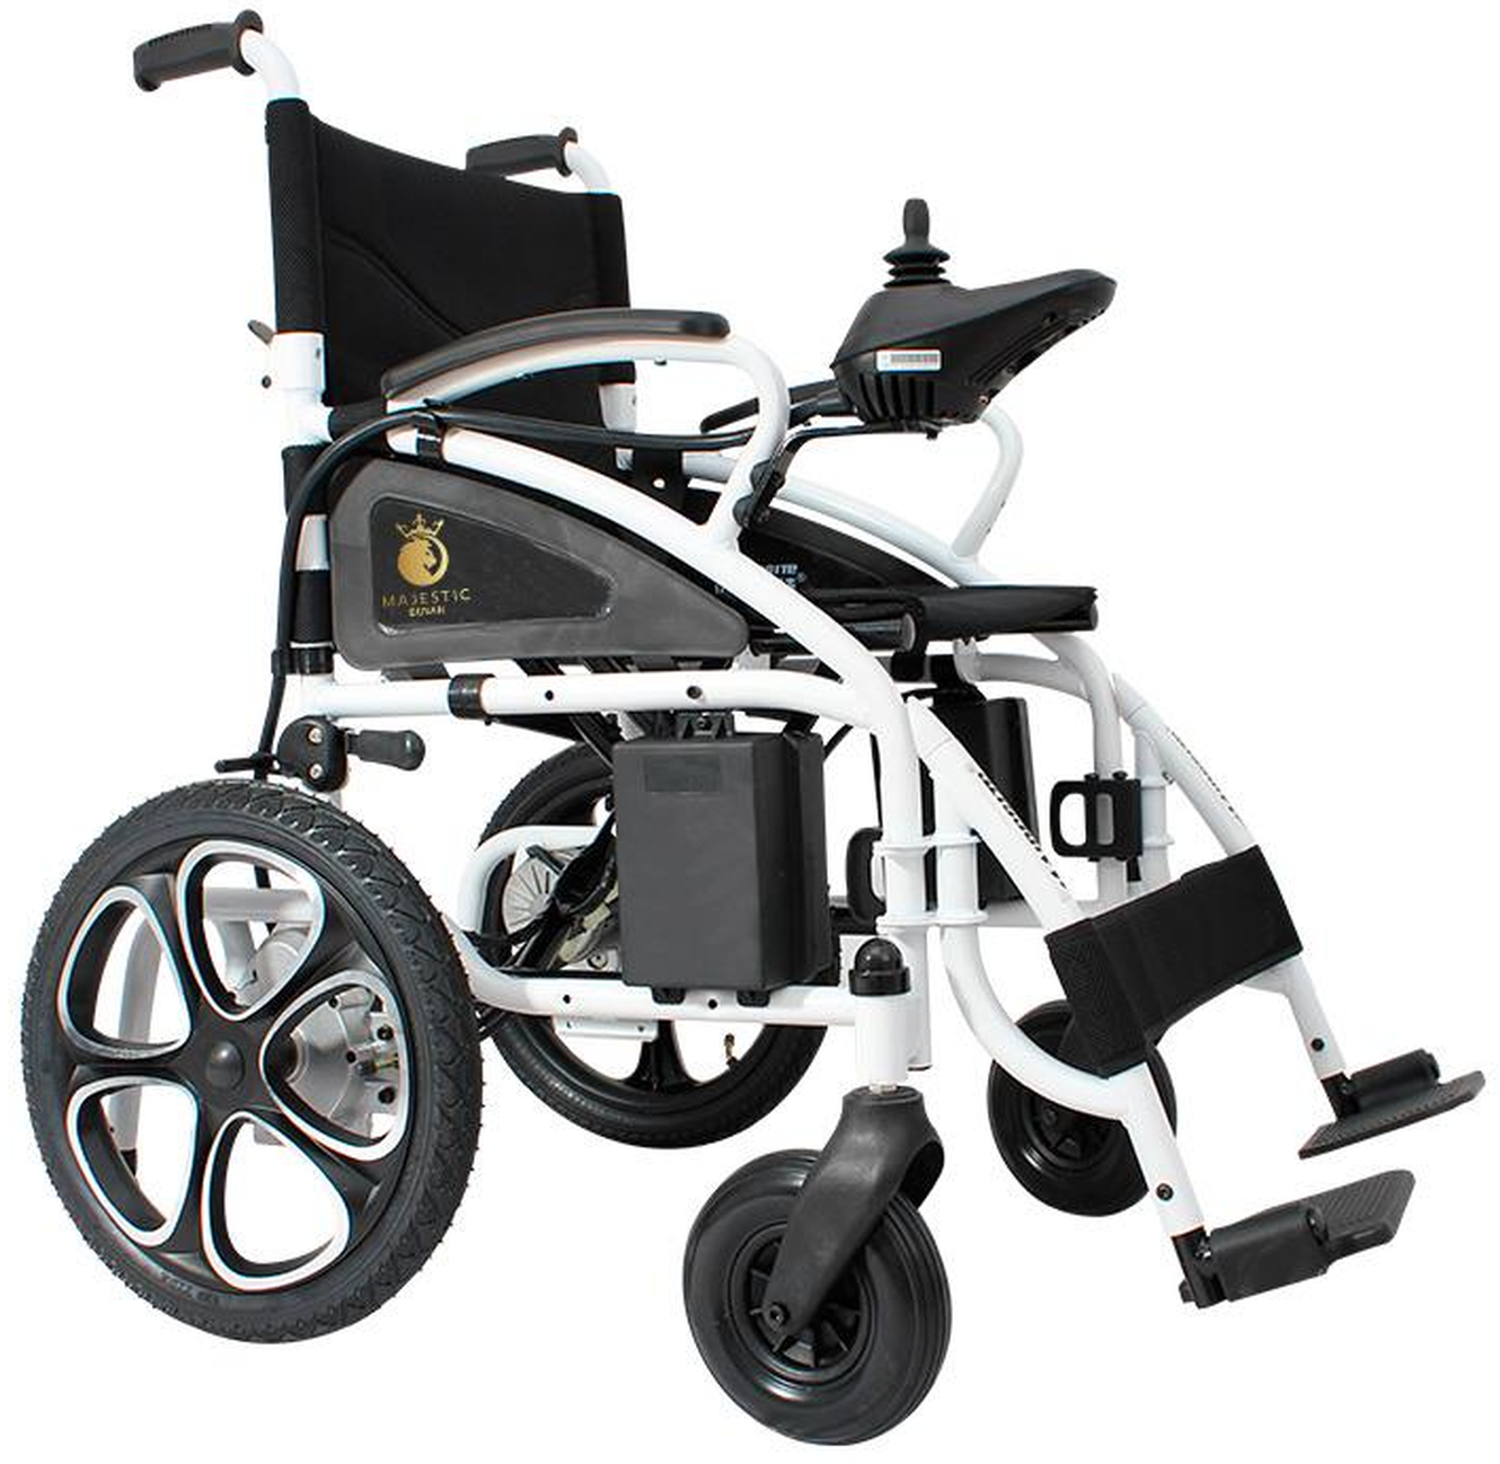 Mobility Chair Folding Electric Wheelchair Medical Mobility Aid Lightweight, Heavy Duty